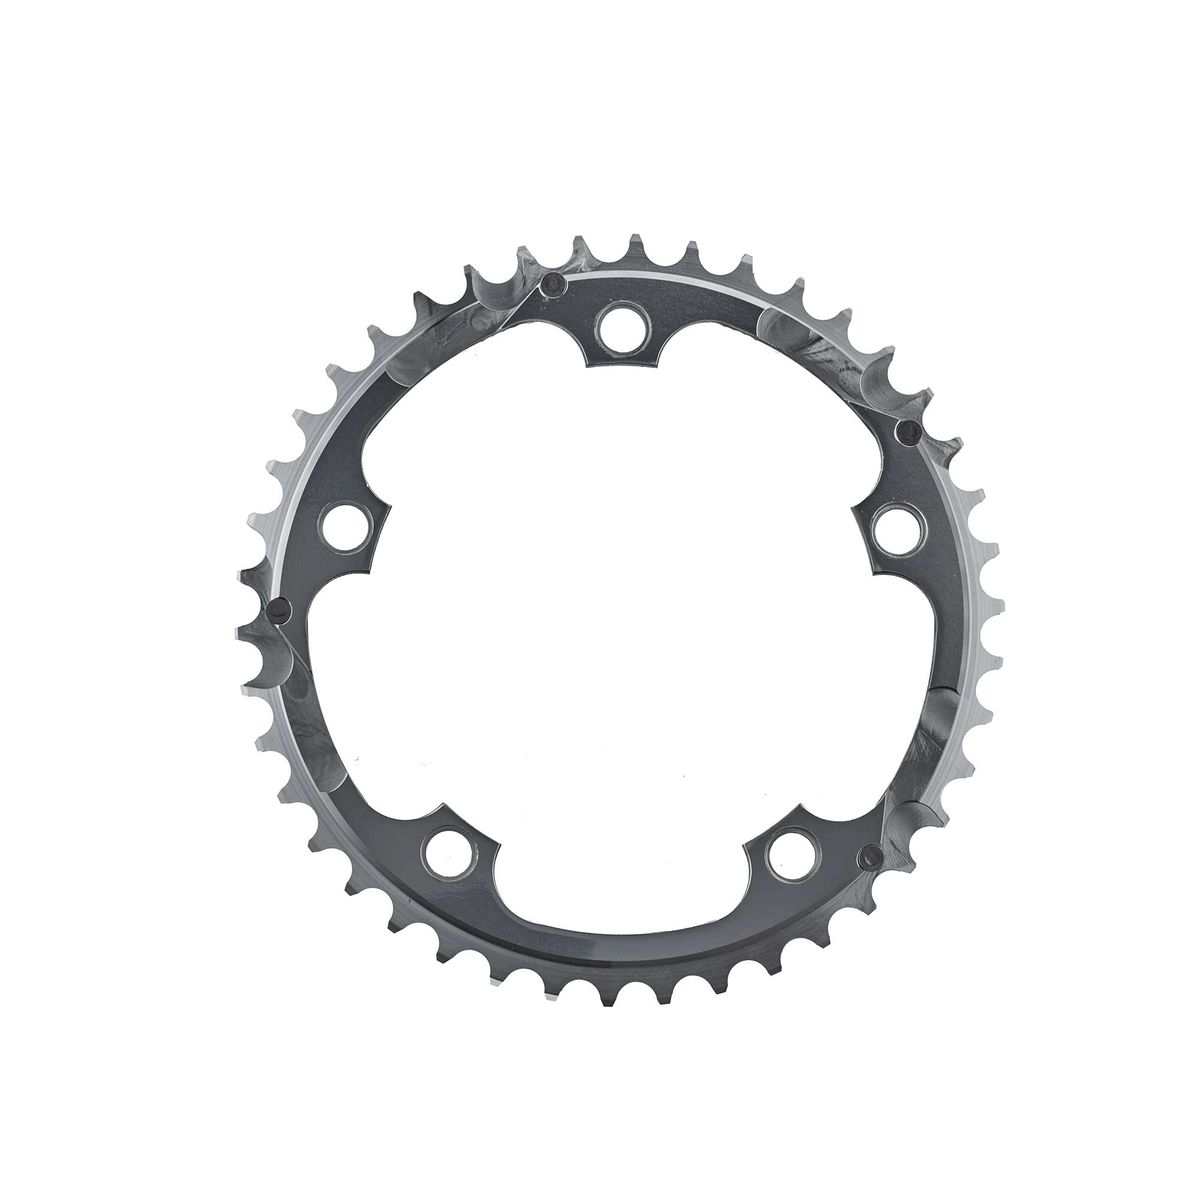 Alizé 9-/10-speed triple 42-tooth chainring